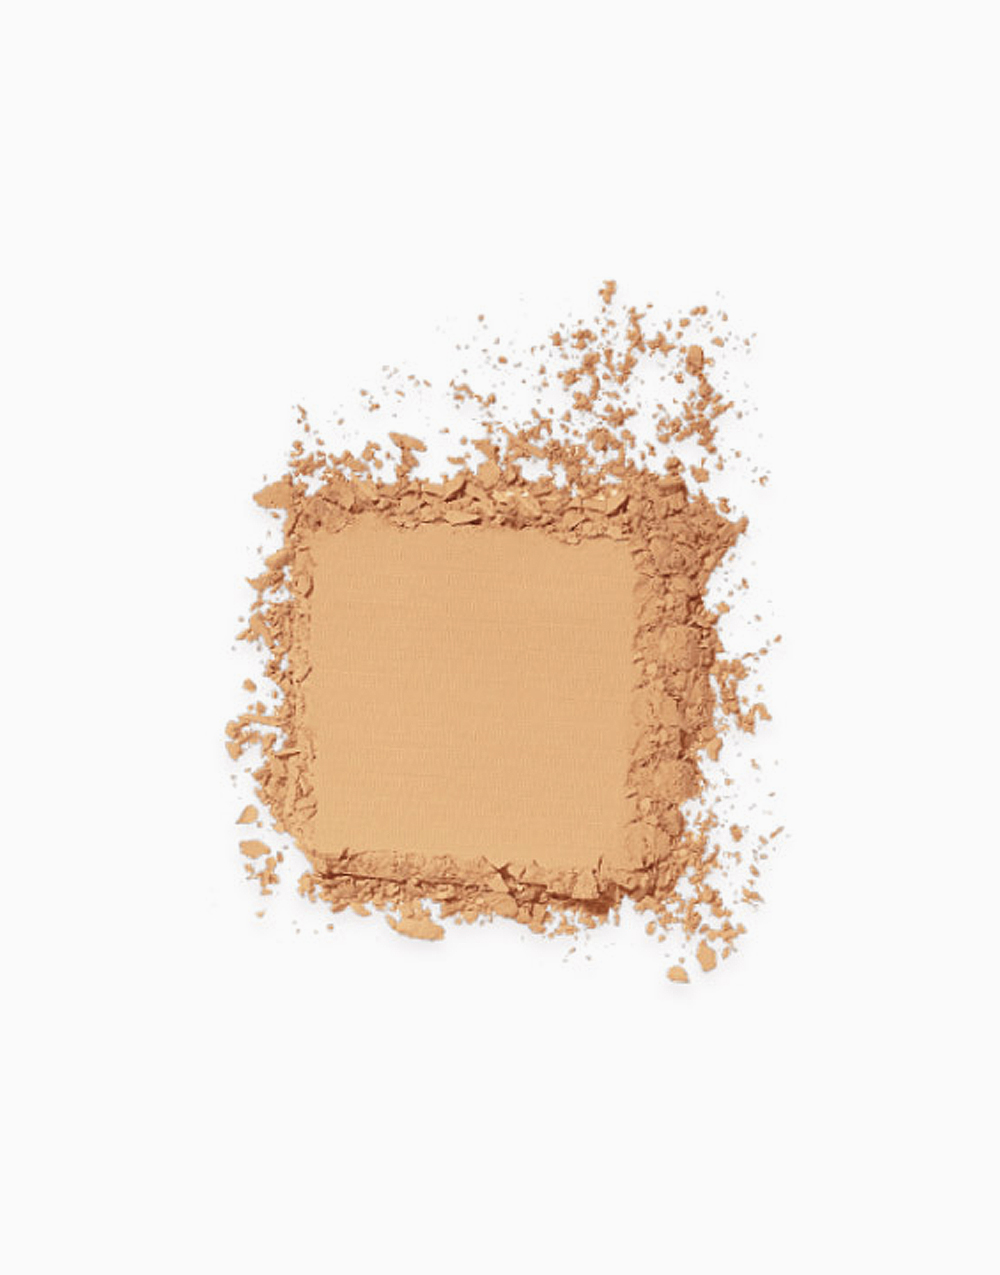 Fit Me Powder Foundation by Maybelline | 230 Natural Buff